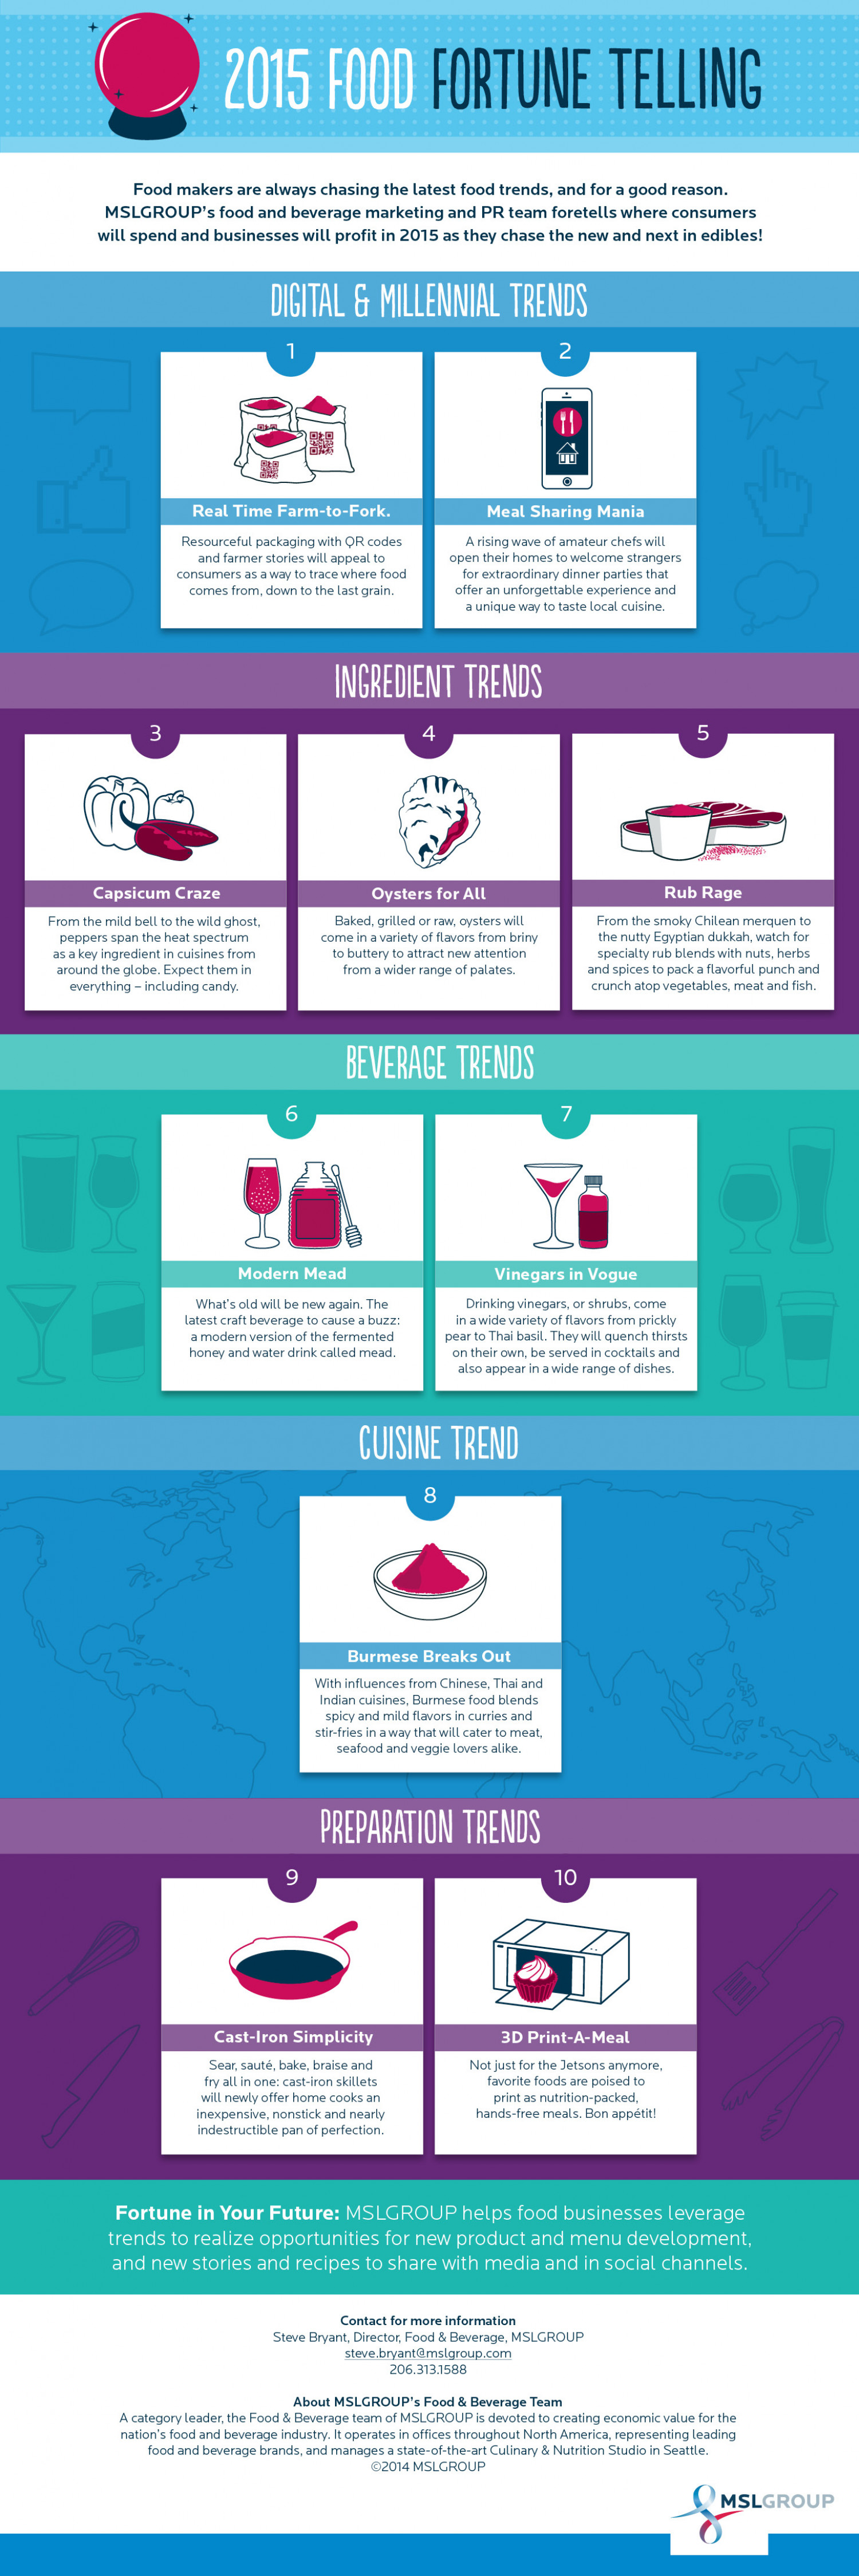 2015 Food Fortune Telling Infographic